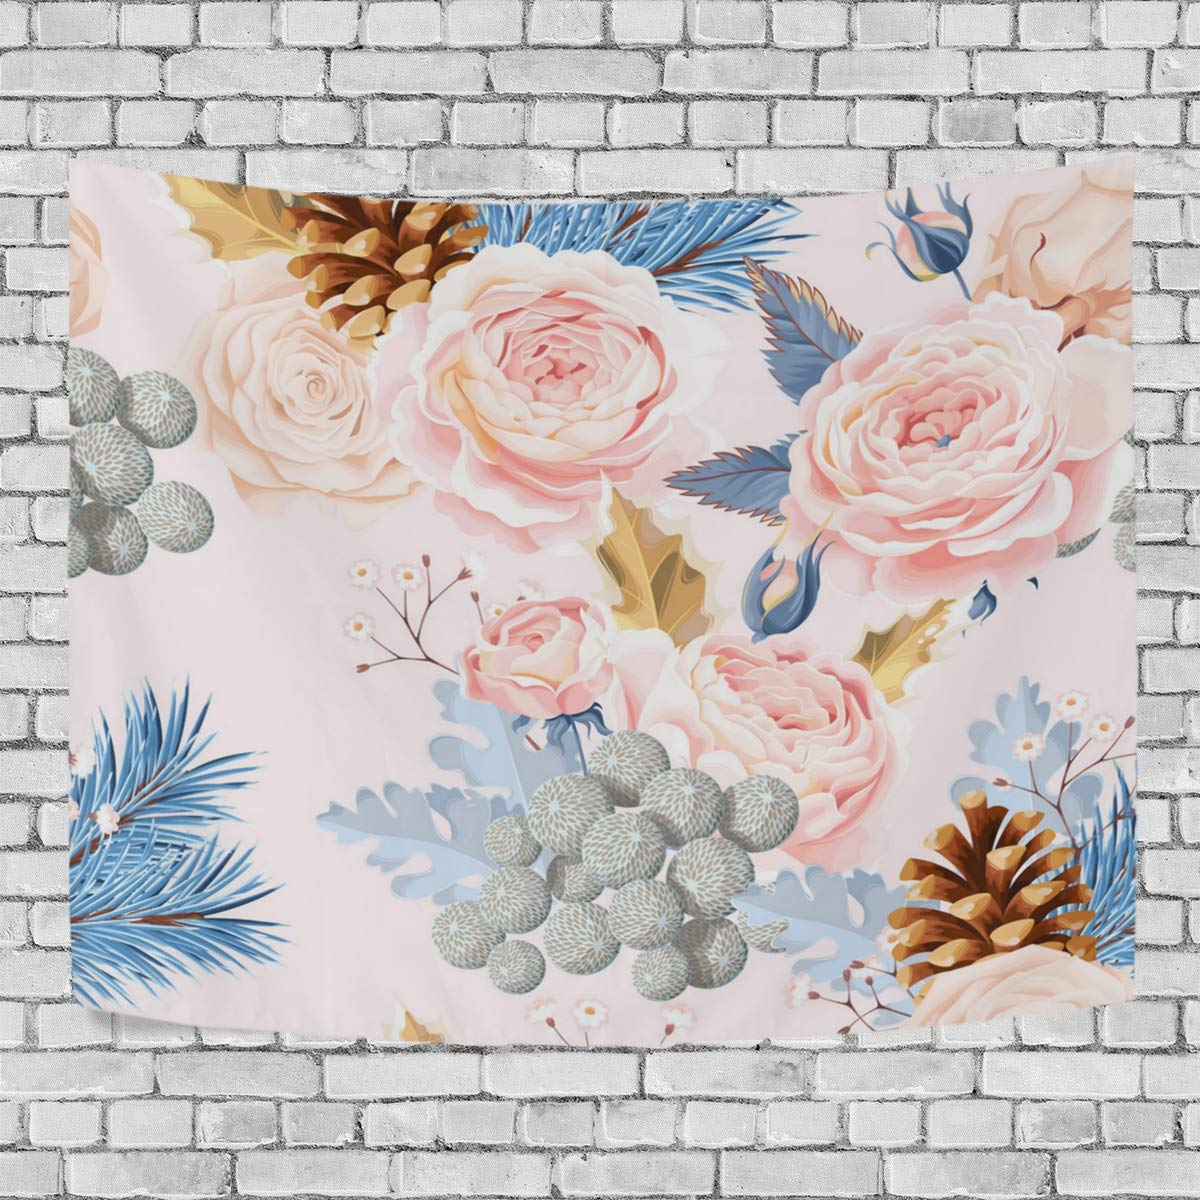 a55112c8580d39 Daisyyr Kittooa Like Roses Under The Sun Unique Romantic Soft Green Wall  Carpet Gorgeous Art Deco Tapestry Bedroom Living Room Dormitory Fashion  Print ...